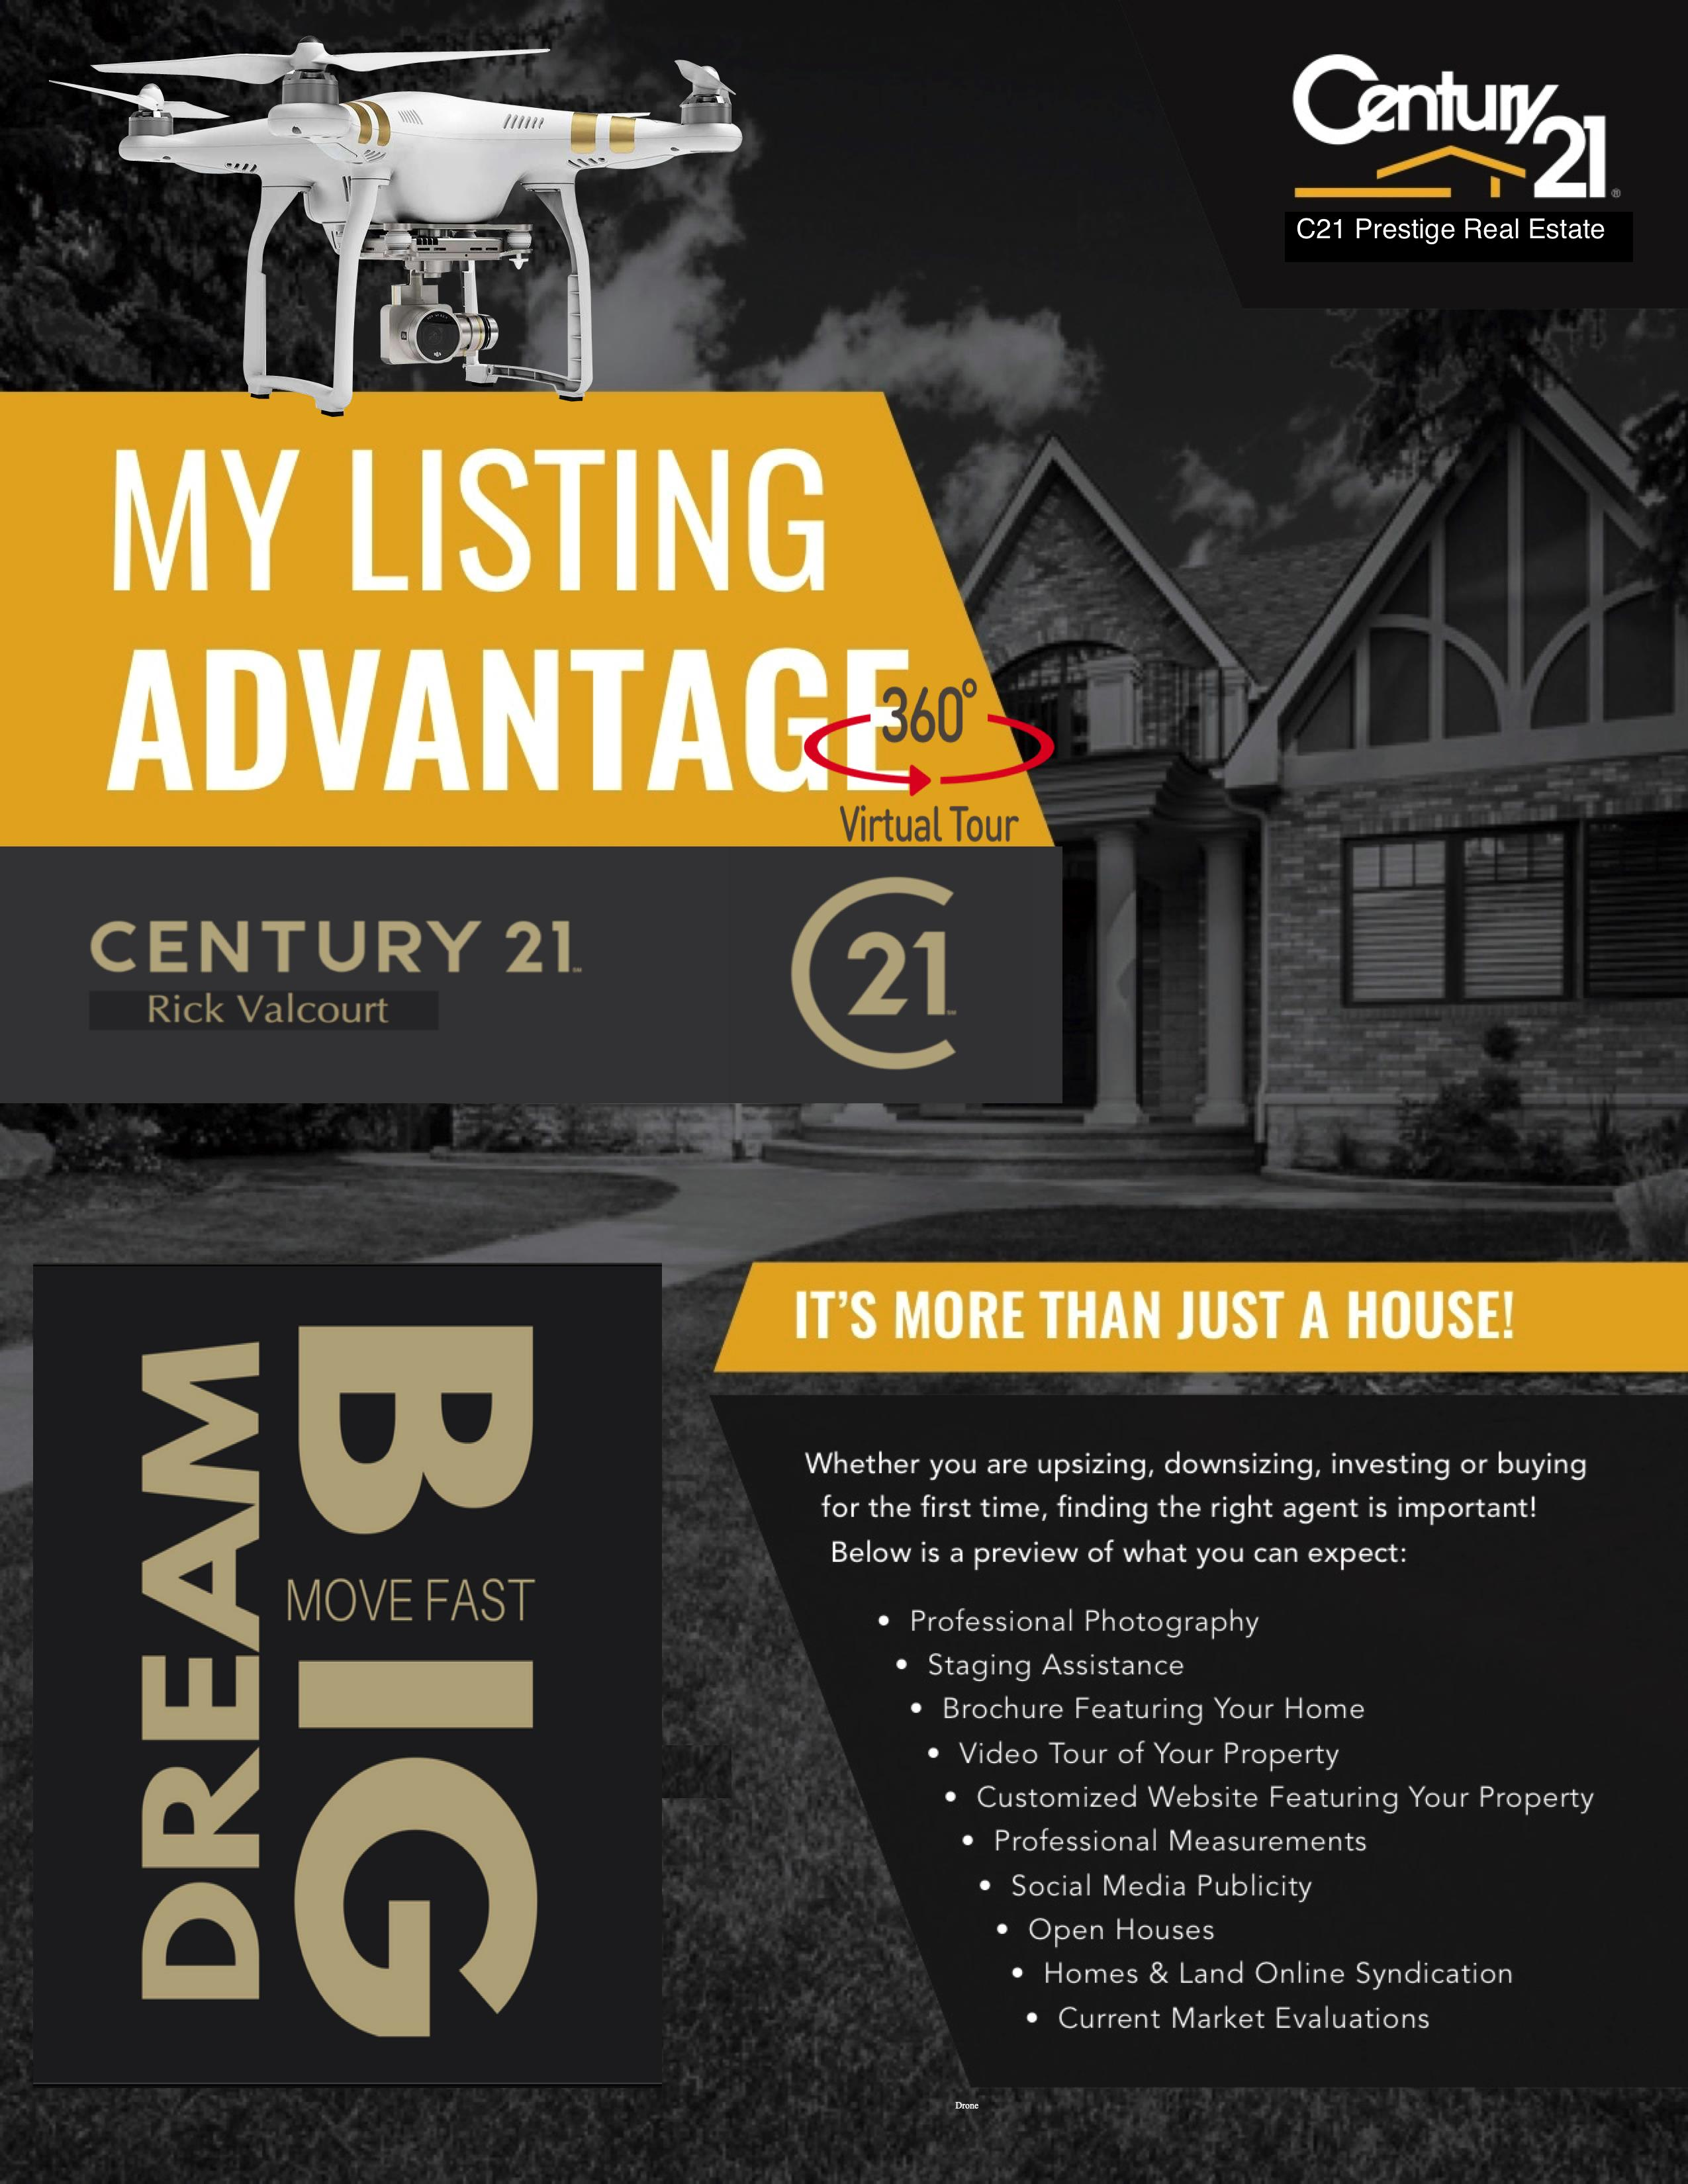 Selling Real Estate in Candle Lake - Rick Valcourt